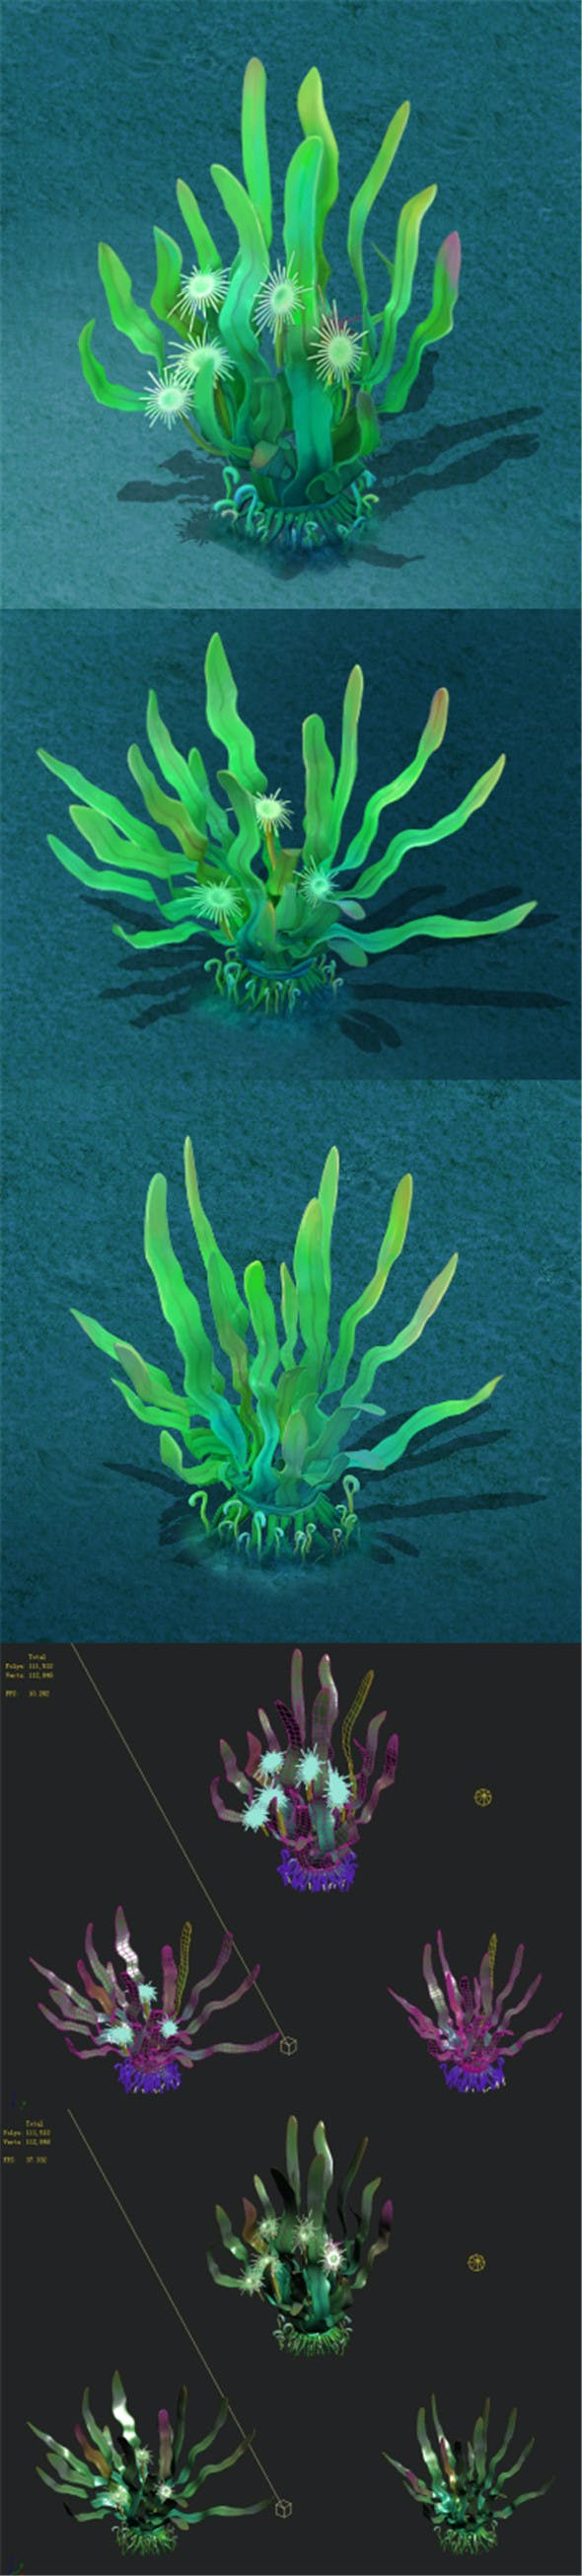 Submarine cartoon world - lonely Yu seaweed - 3DOcean Item for Sale